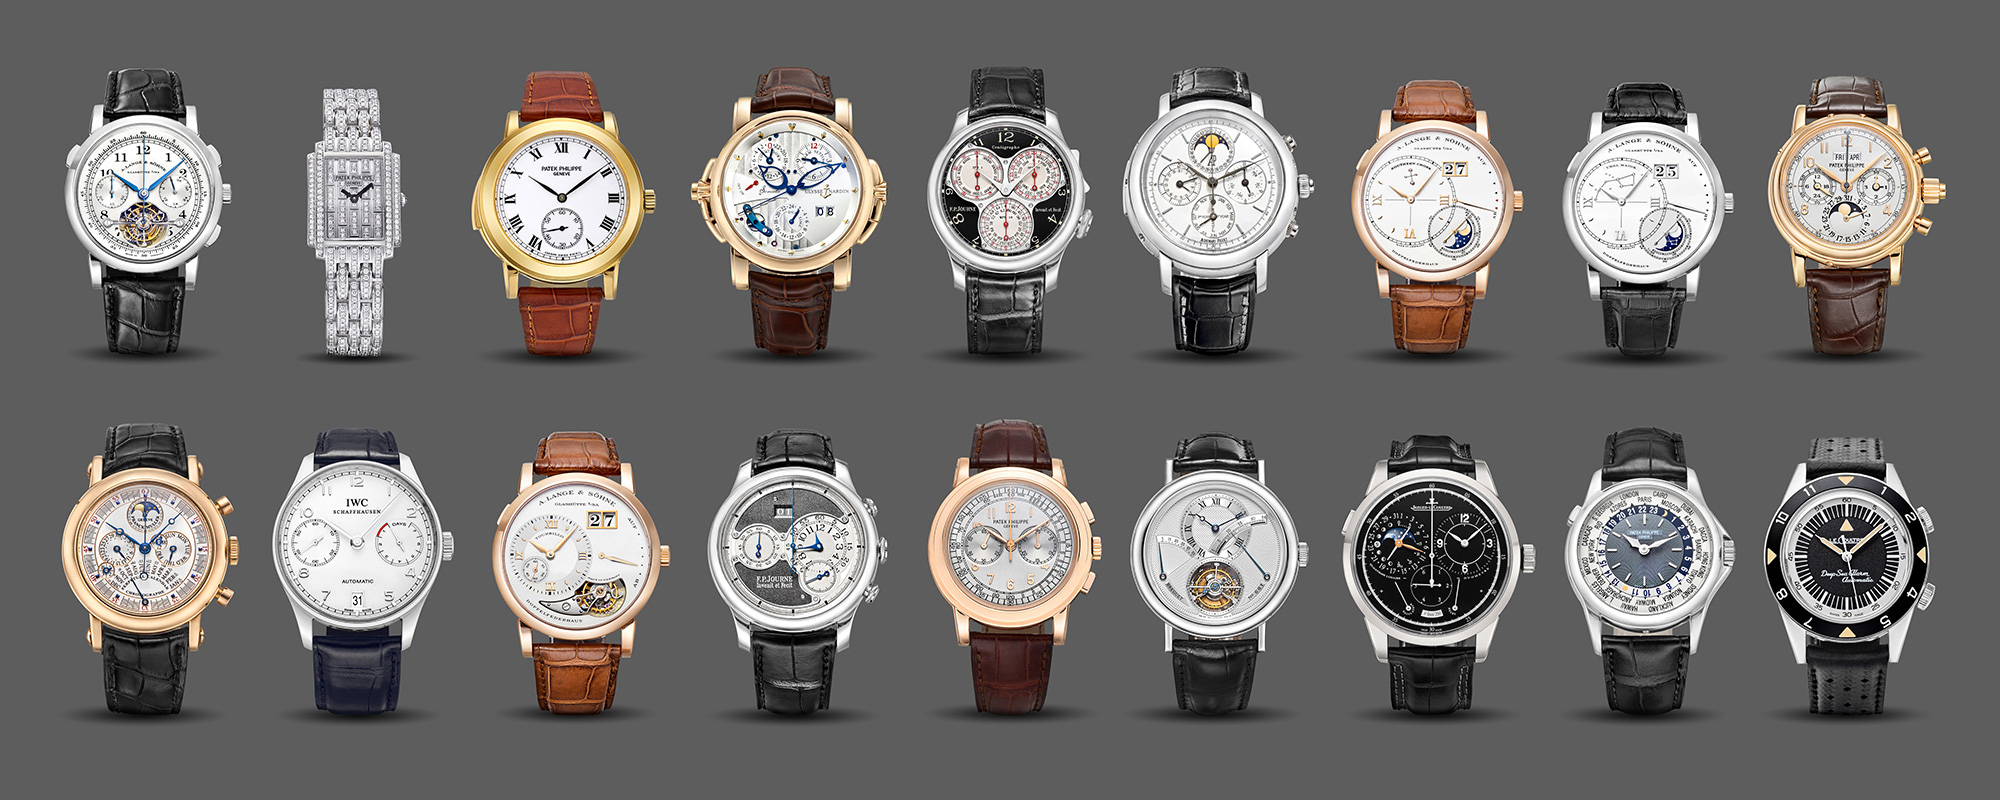 Pre-Owned & Vintage Timepieces